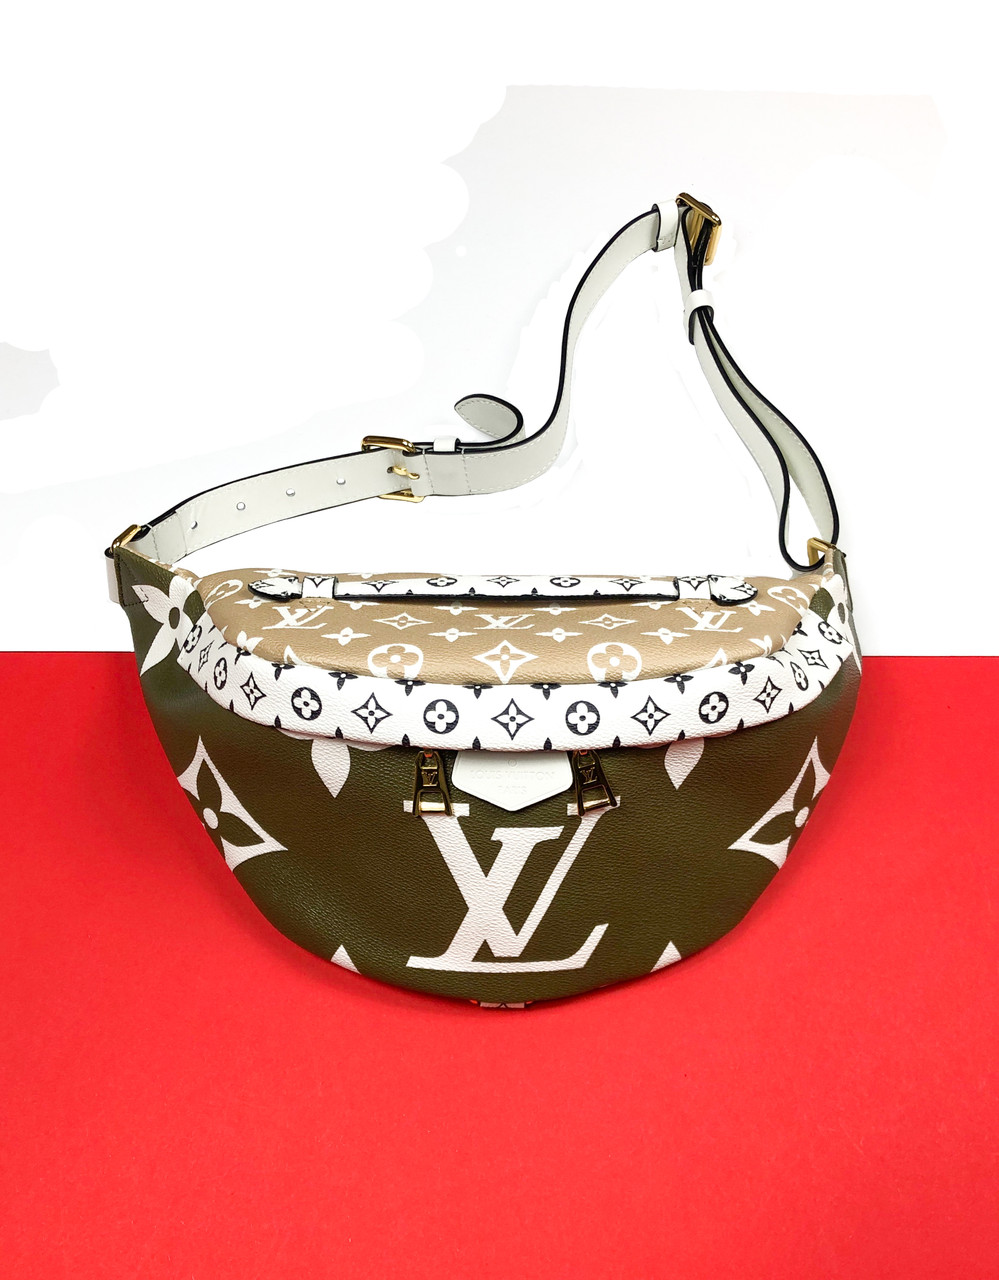 Поясная сумка Bumbag Louis Vuitton (Луи Виттон Бумбэг) арт. 03-11